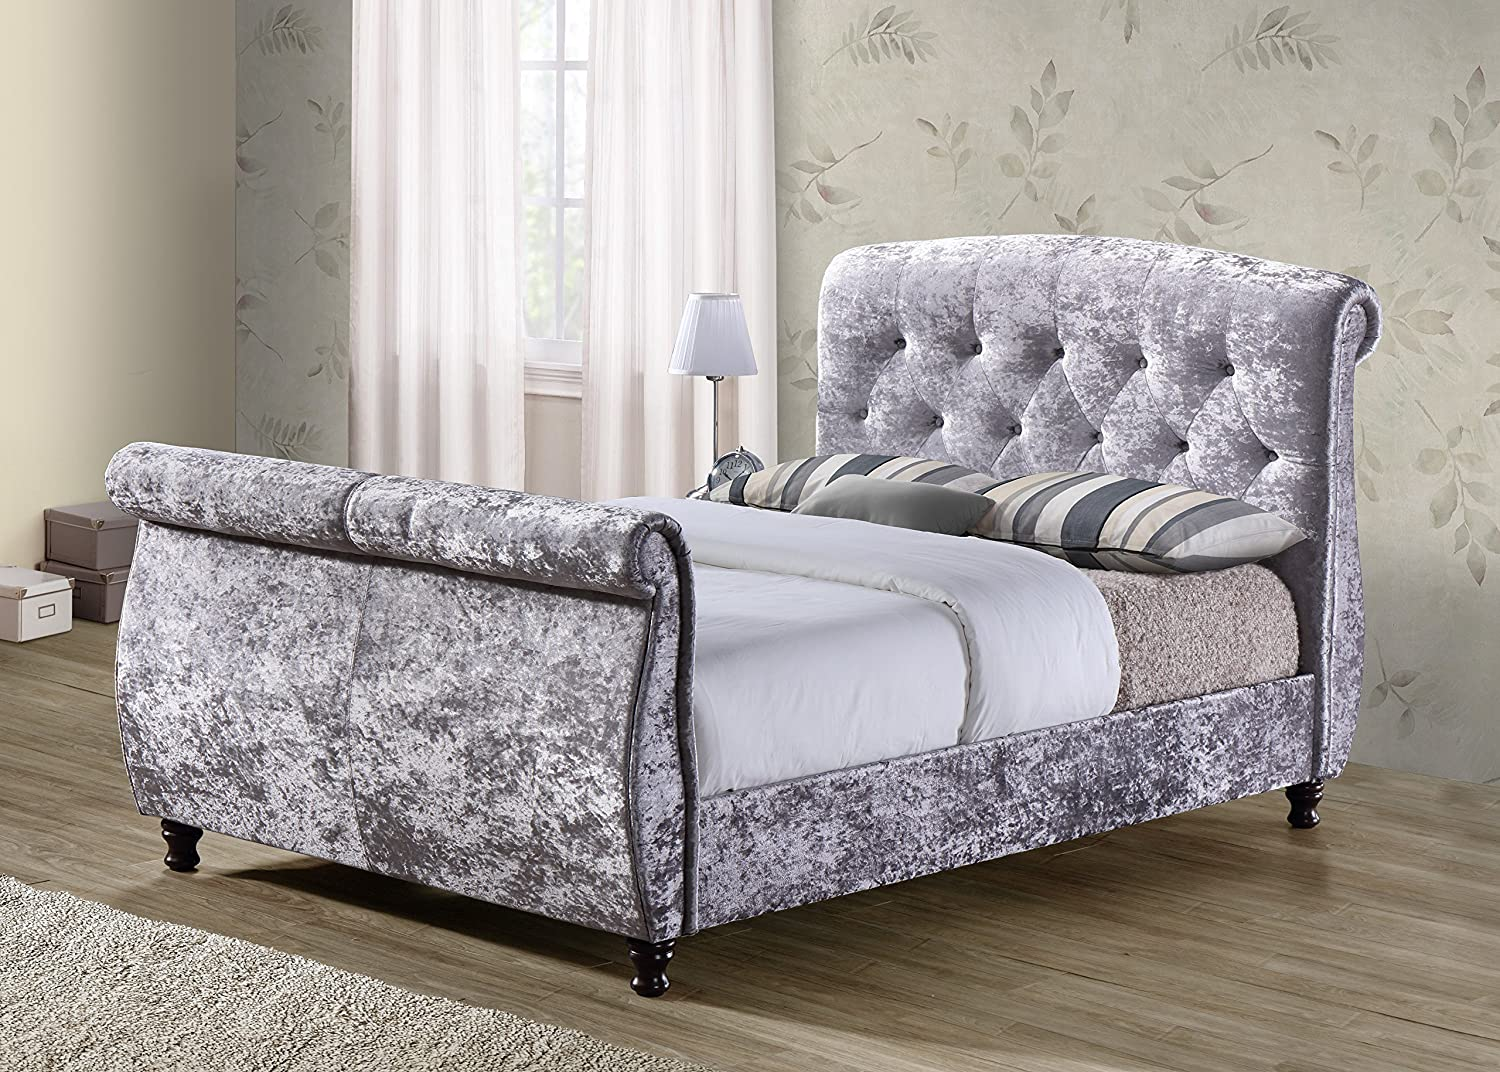 grey upholstered sleigh bed. Birlea Furniture Toulouse Sleigh Bed, Crushed Velvet, Steel, King Size: Amazon.co.uk: Kitchen \u0026 Home Grey Upholstered Bed